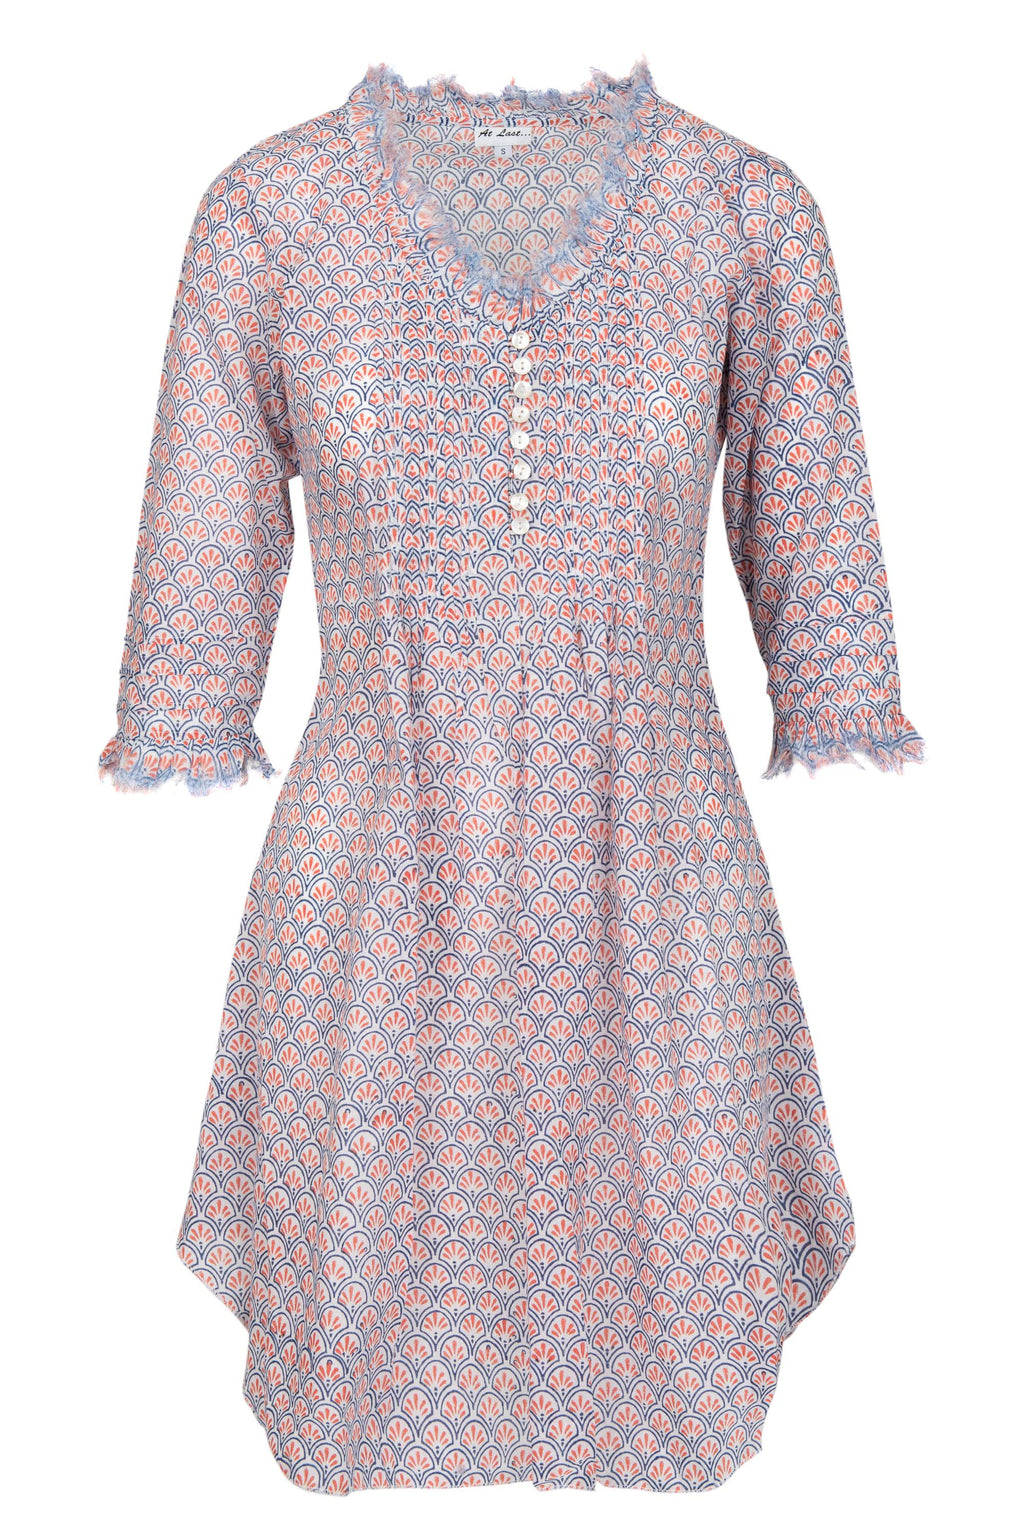 Annabel Cotton Tunic - Orange Pattern